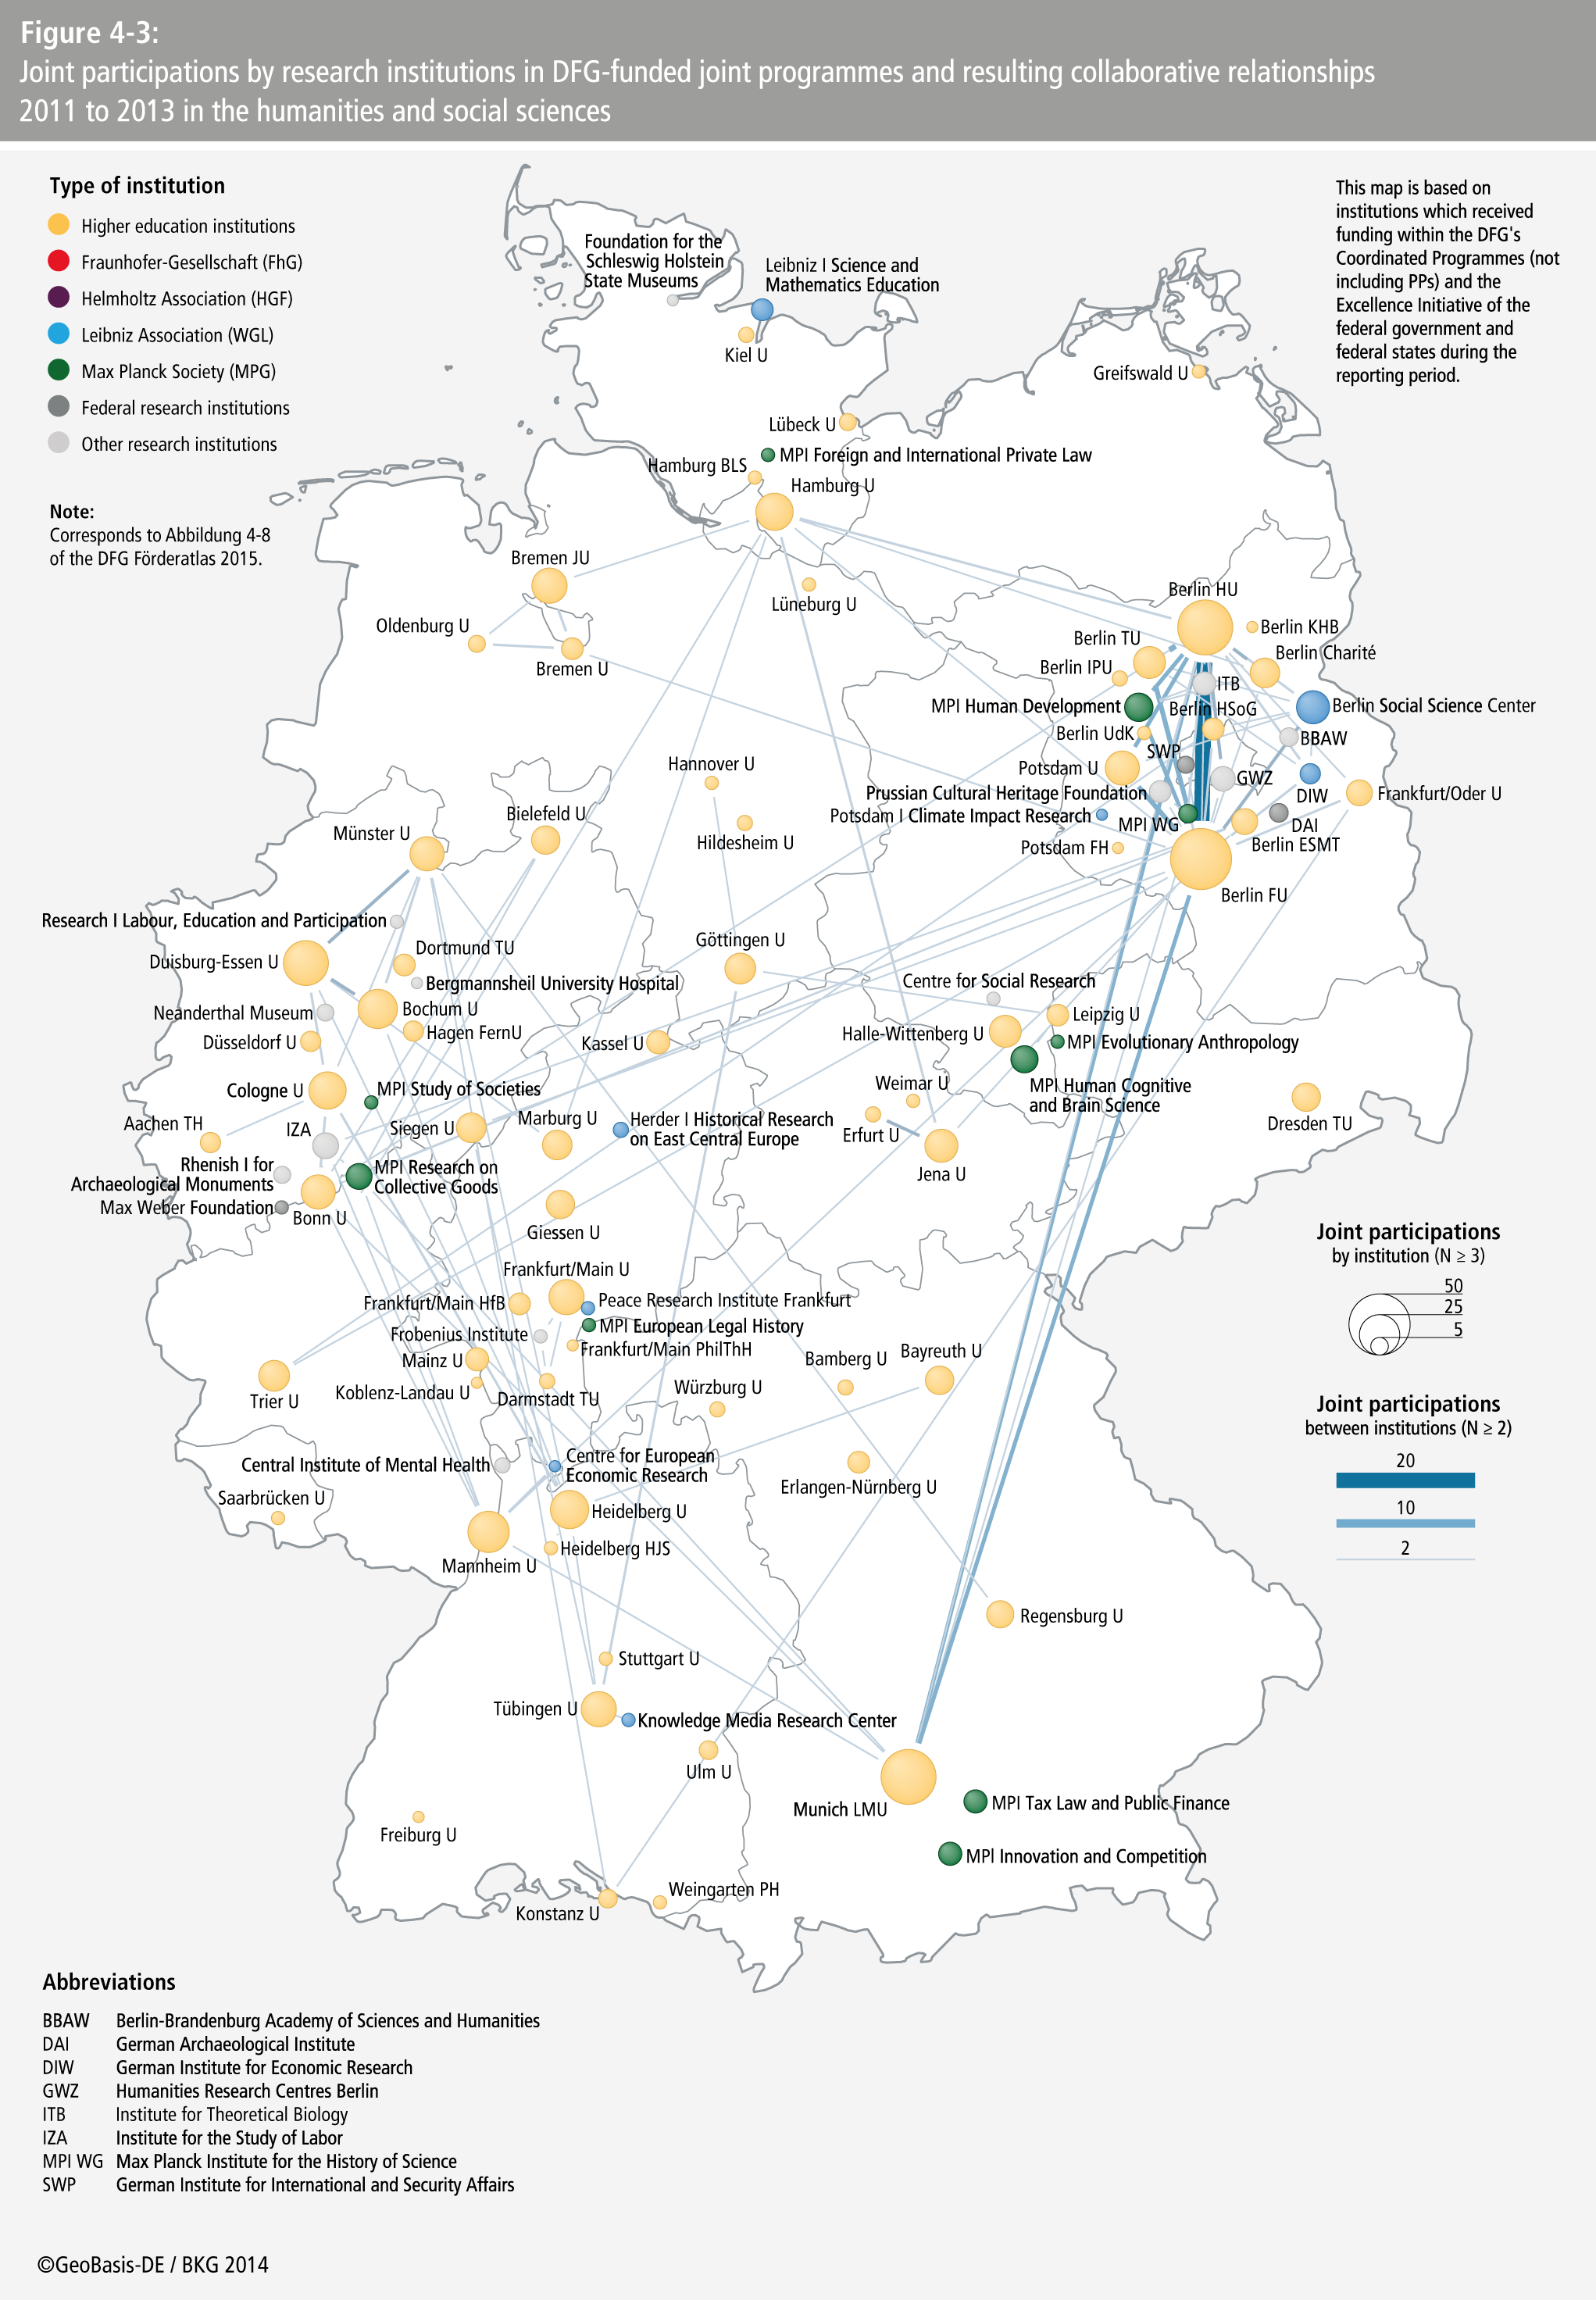 DFG, German Research Foundation - Funding Atlas 2015